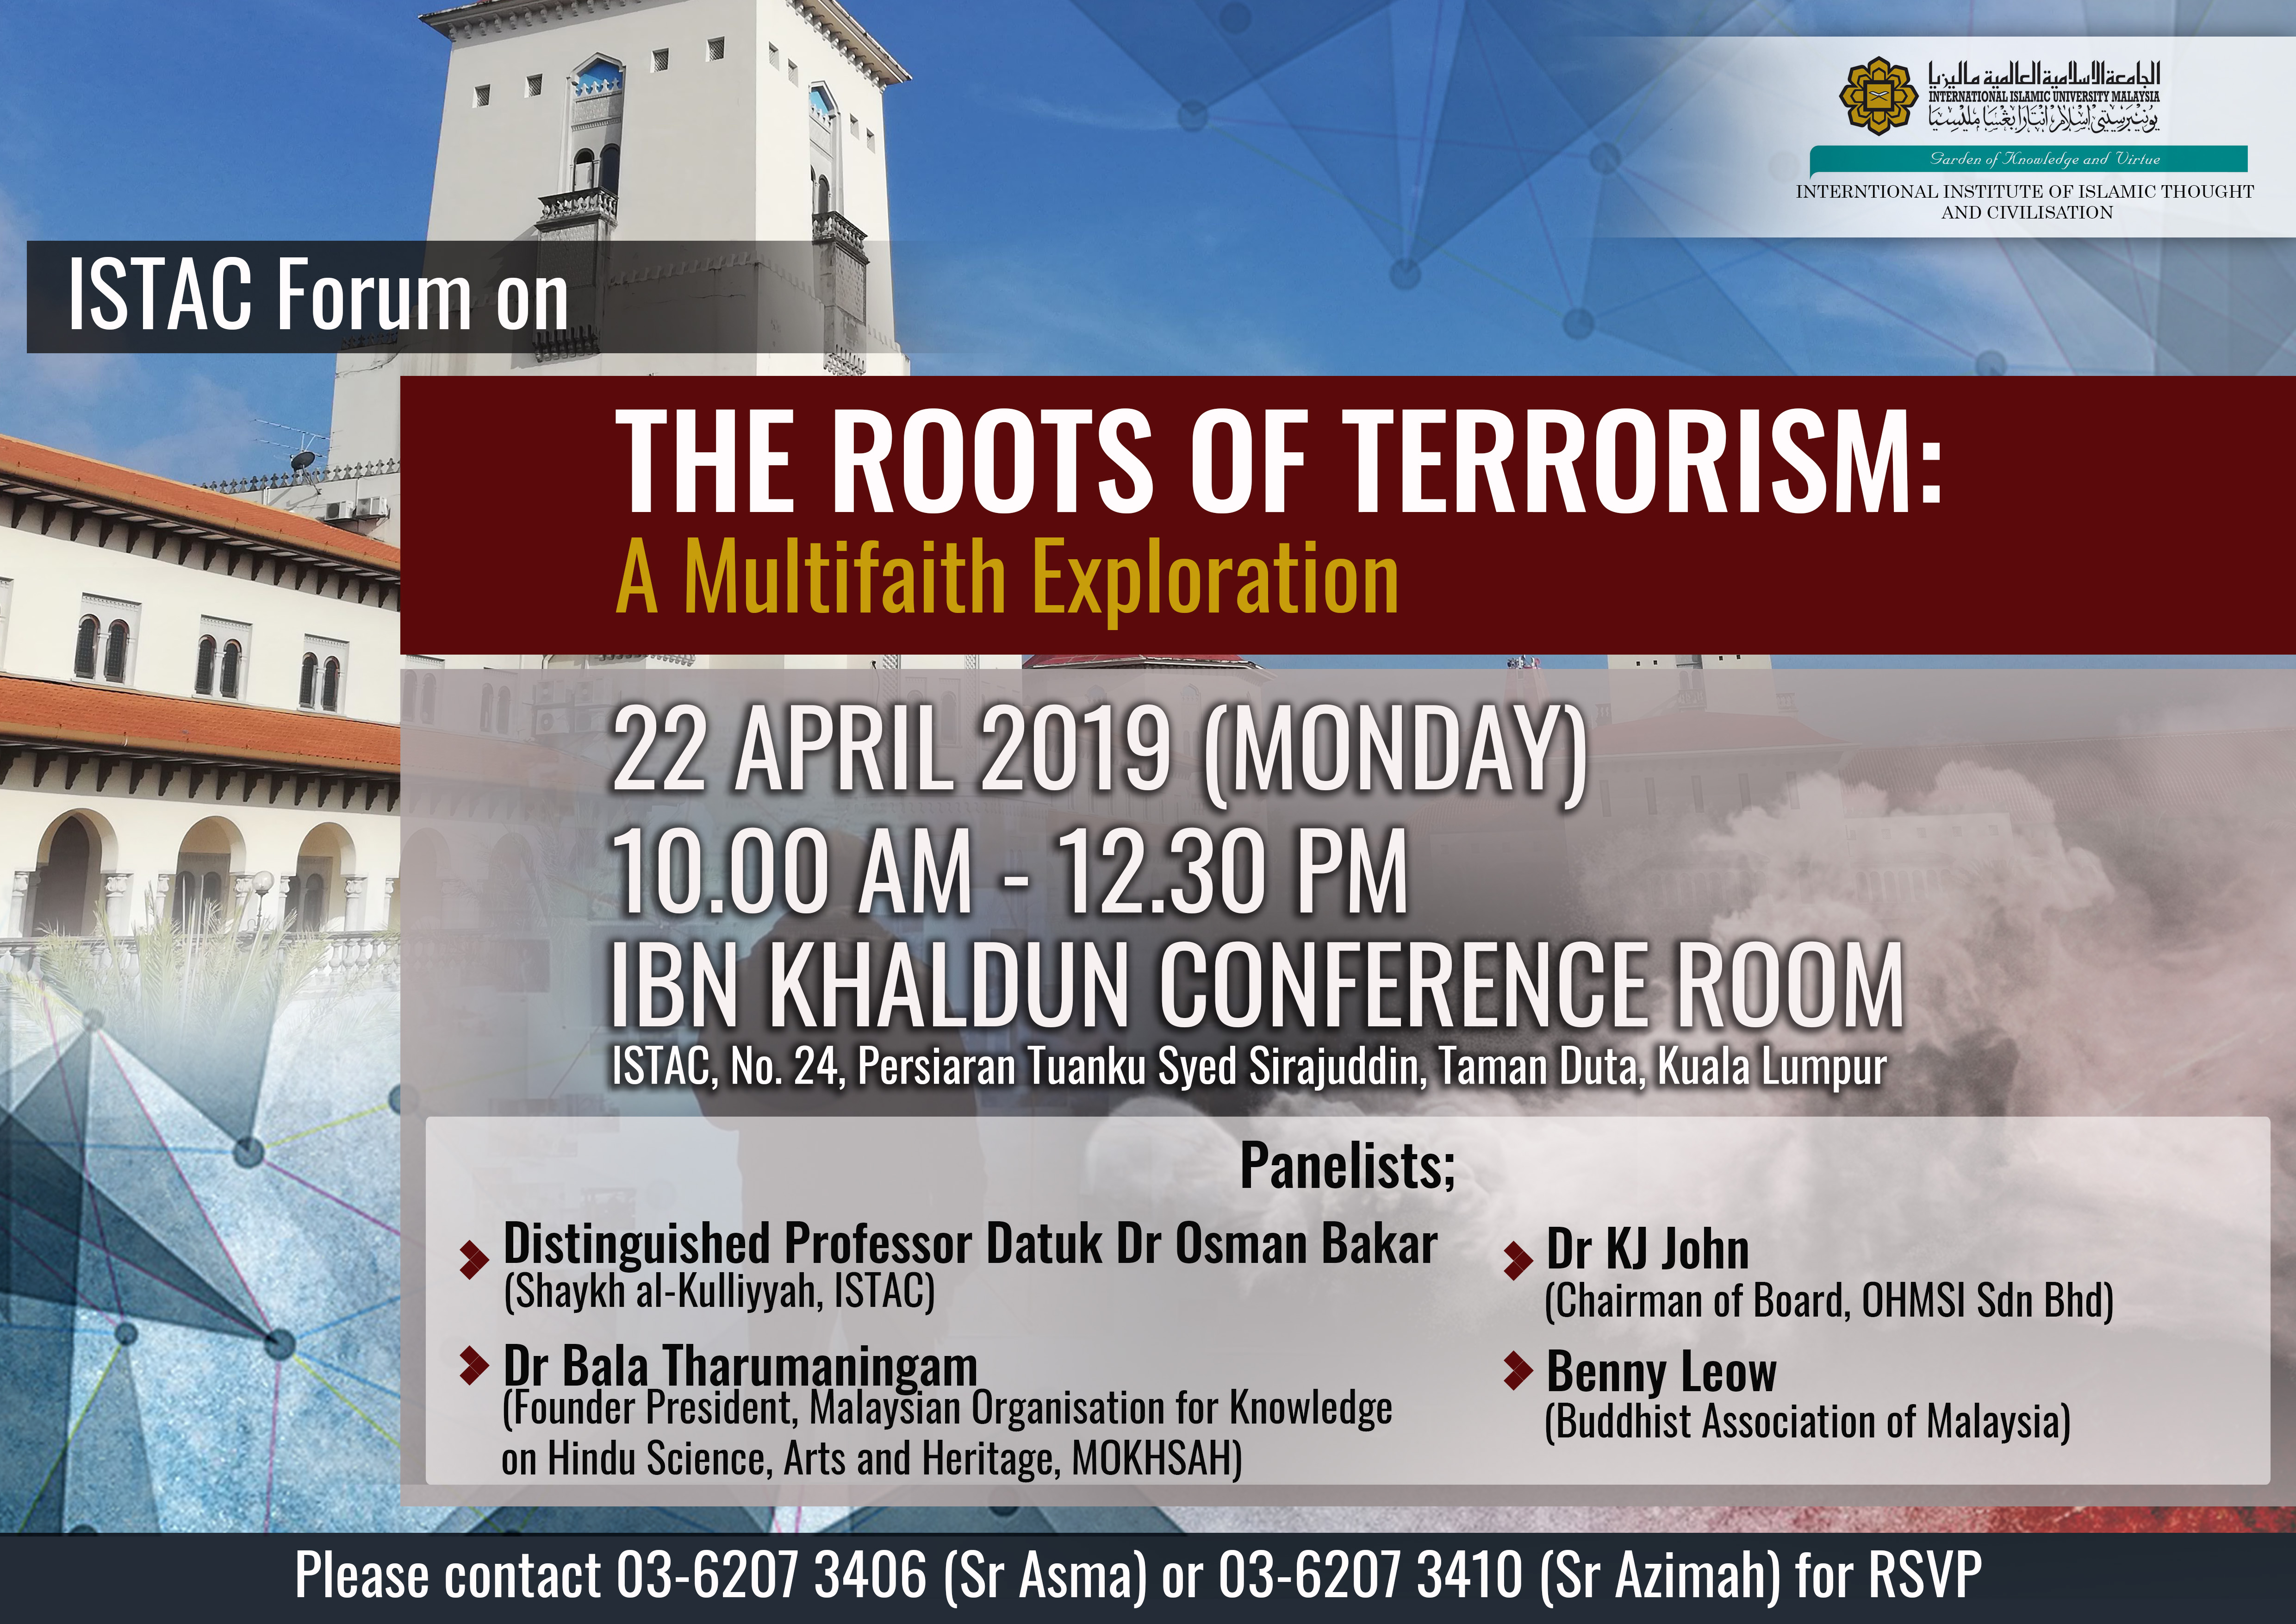 ISTAC FORUM ON THE ROOTS OF TERRORISM: A Multifaith Exploration